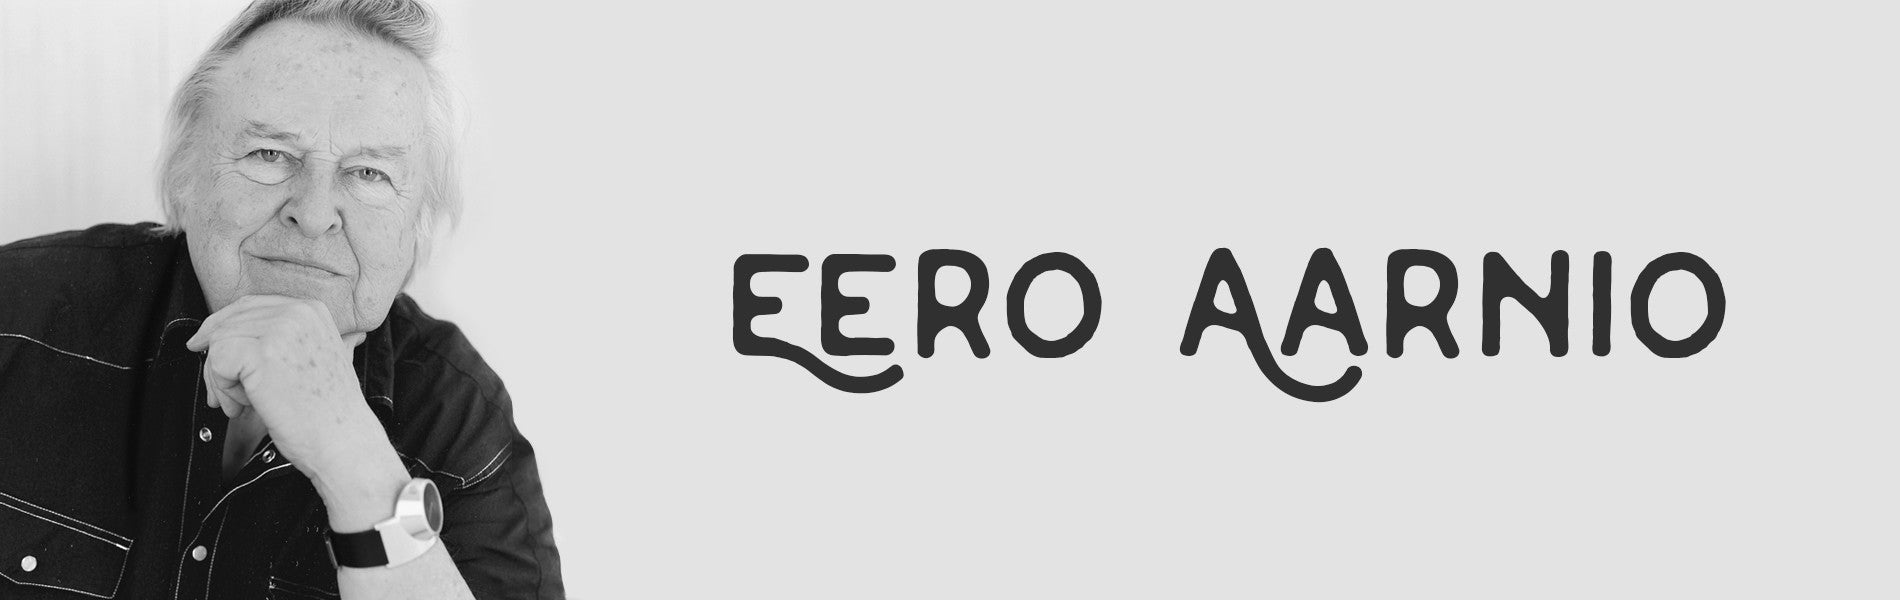 Eero Aarnio: Finnish, innovative designer